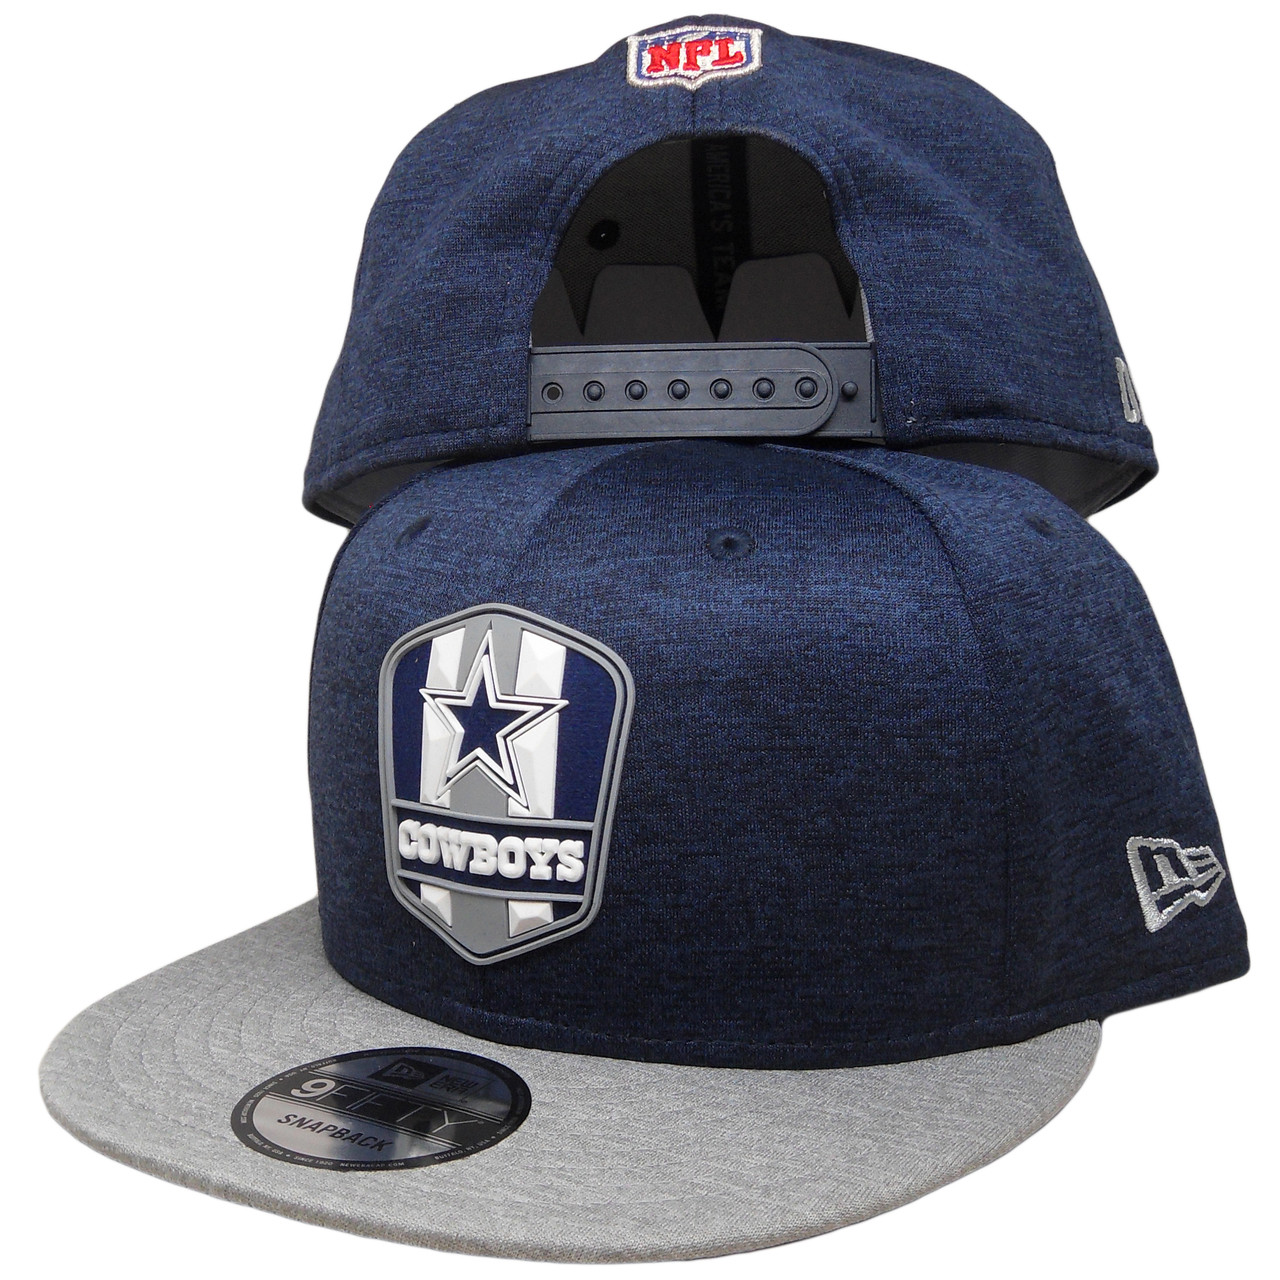 7d11d3960 Dallas Cowboys New Era 2018 Onfield 9Fifty Snapback Hat - Navy